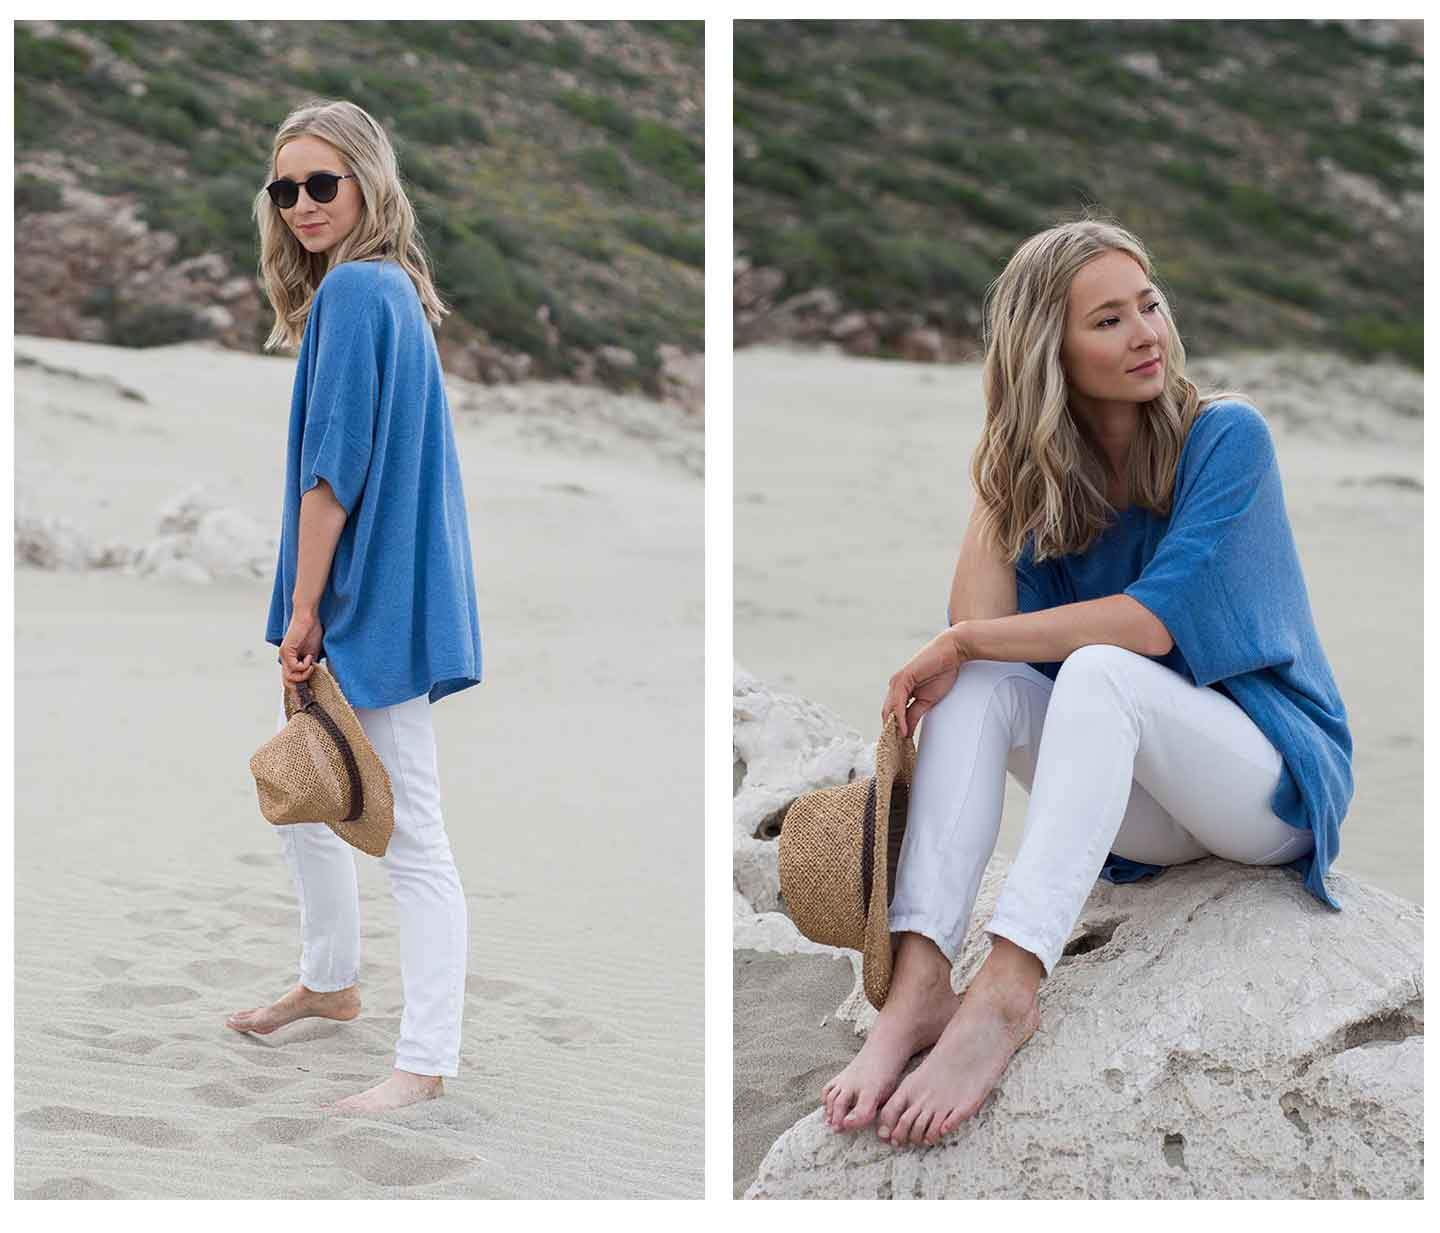 woman-on-beach-wearing-a-blue-cashmere-kimono-jumper-with-white-jeans-sunglasses-and-a-straw-hat